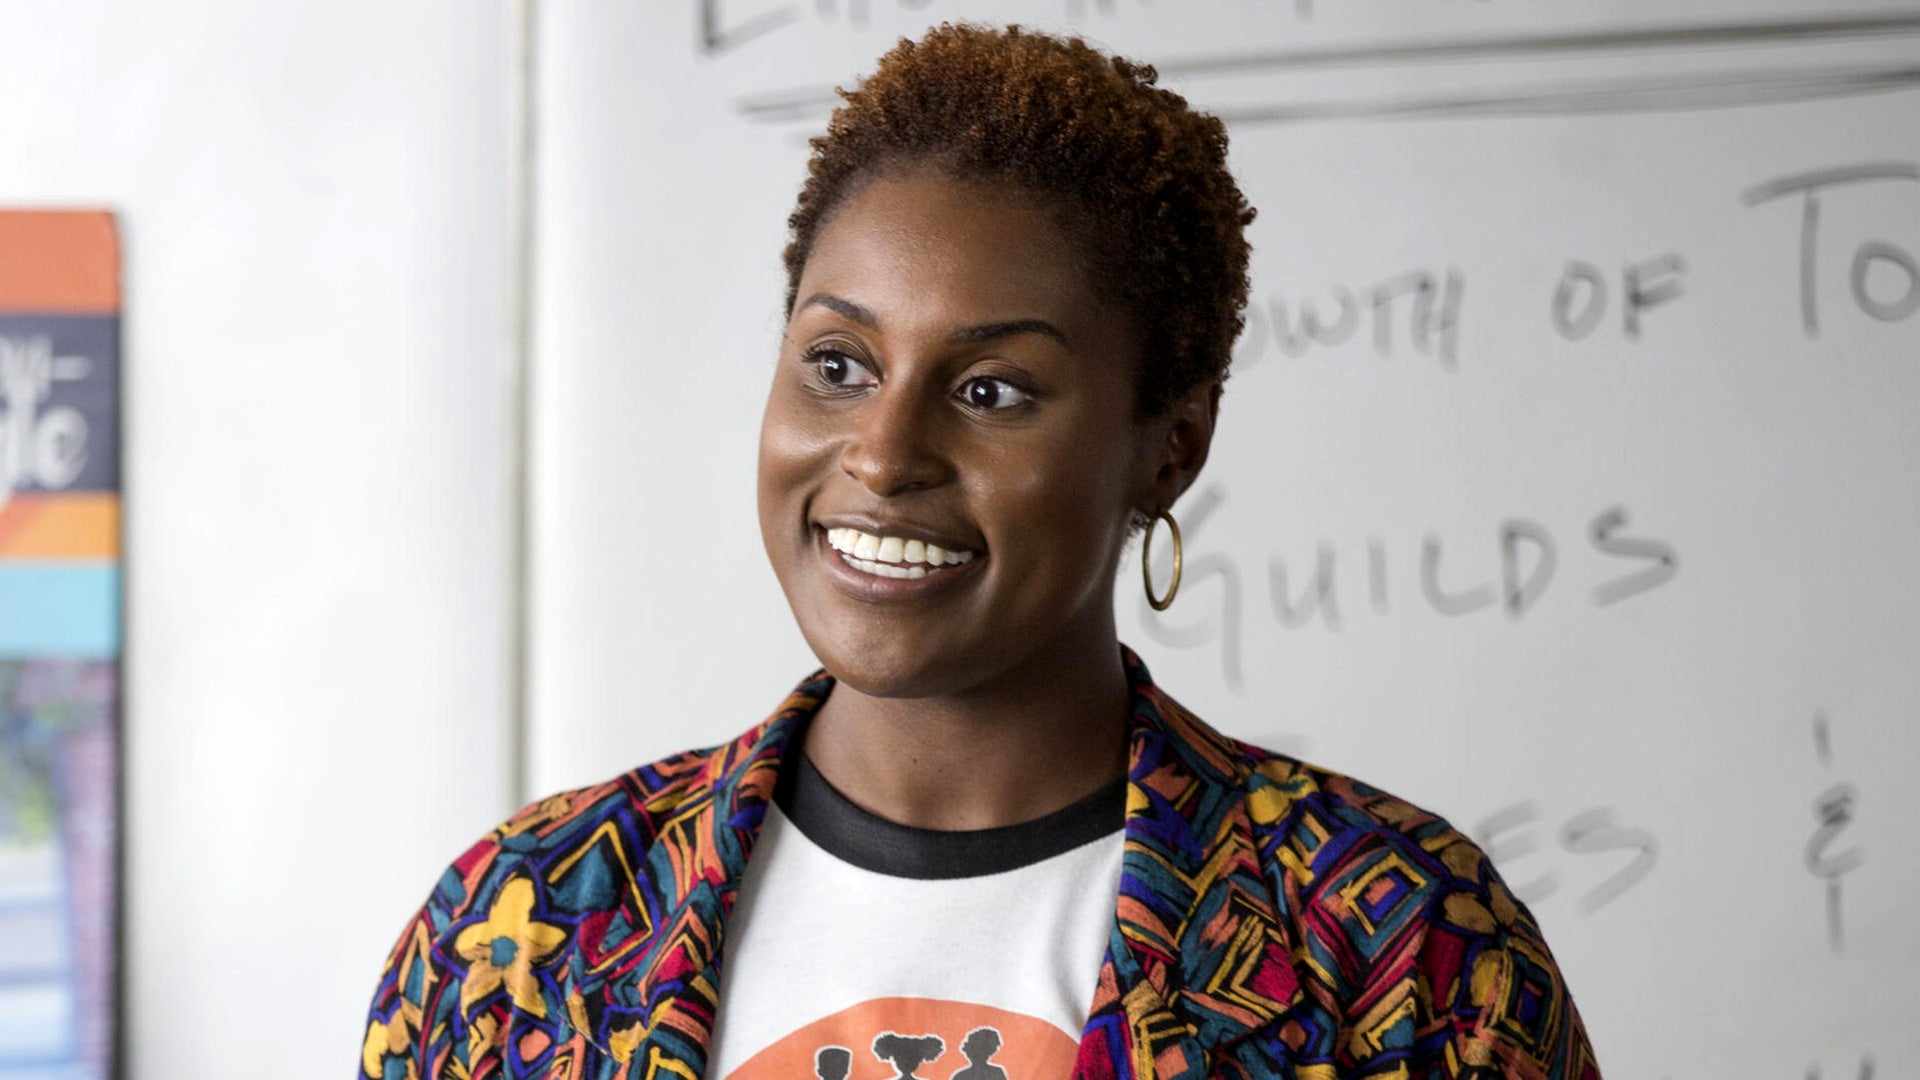 The Official 'Insecure' Trailer Has Arrived